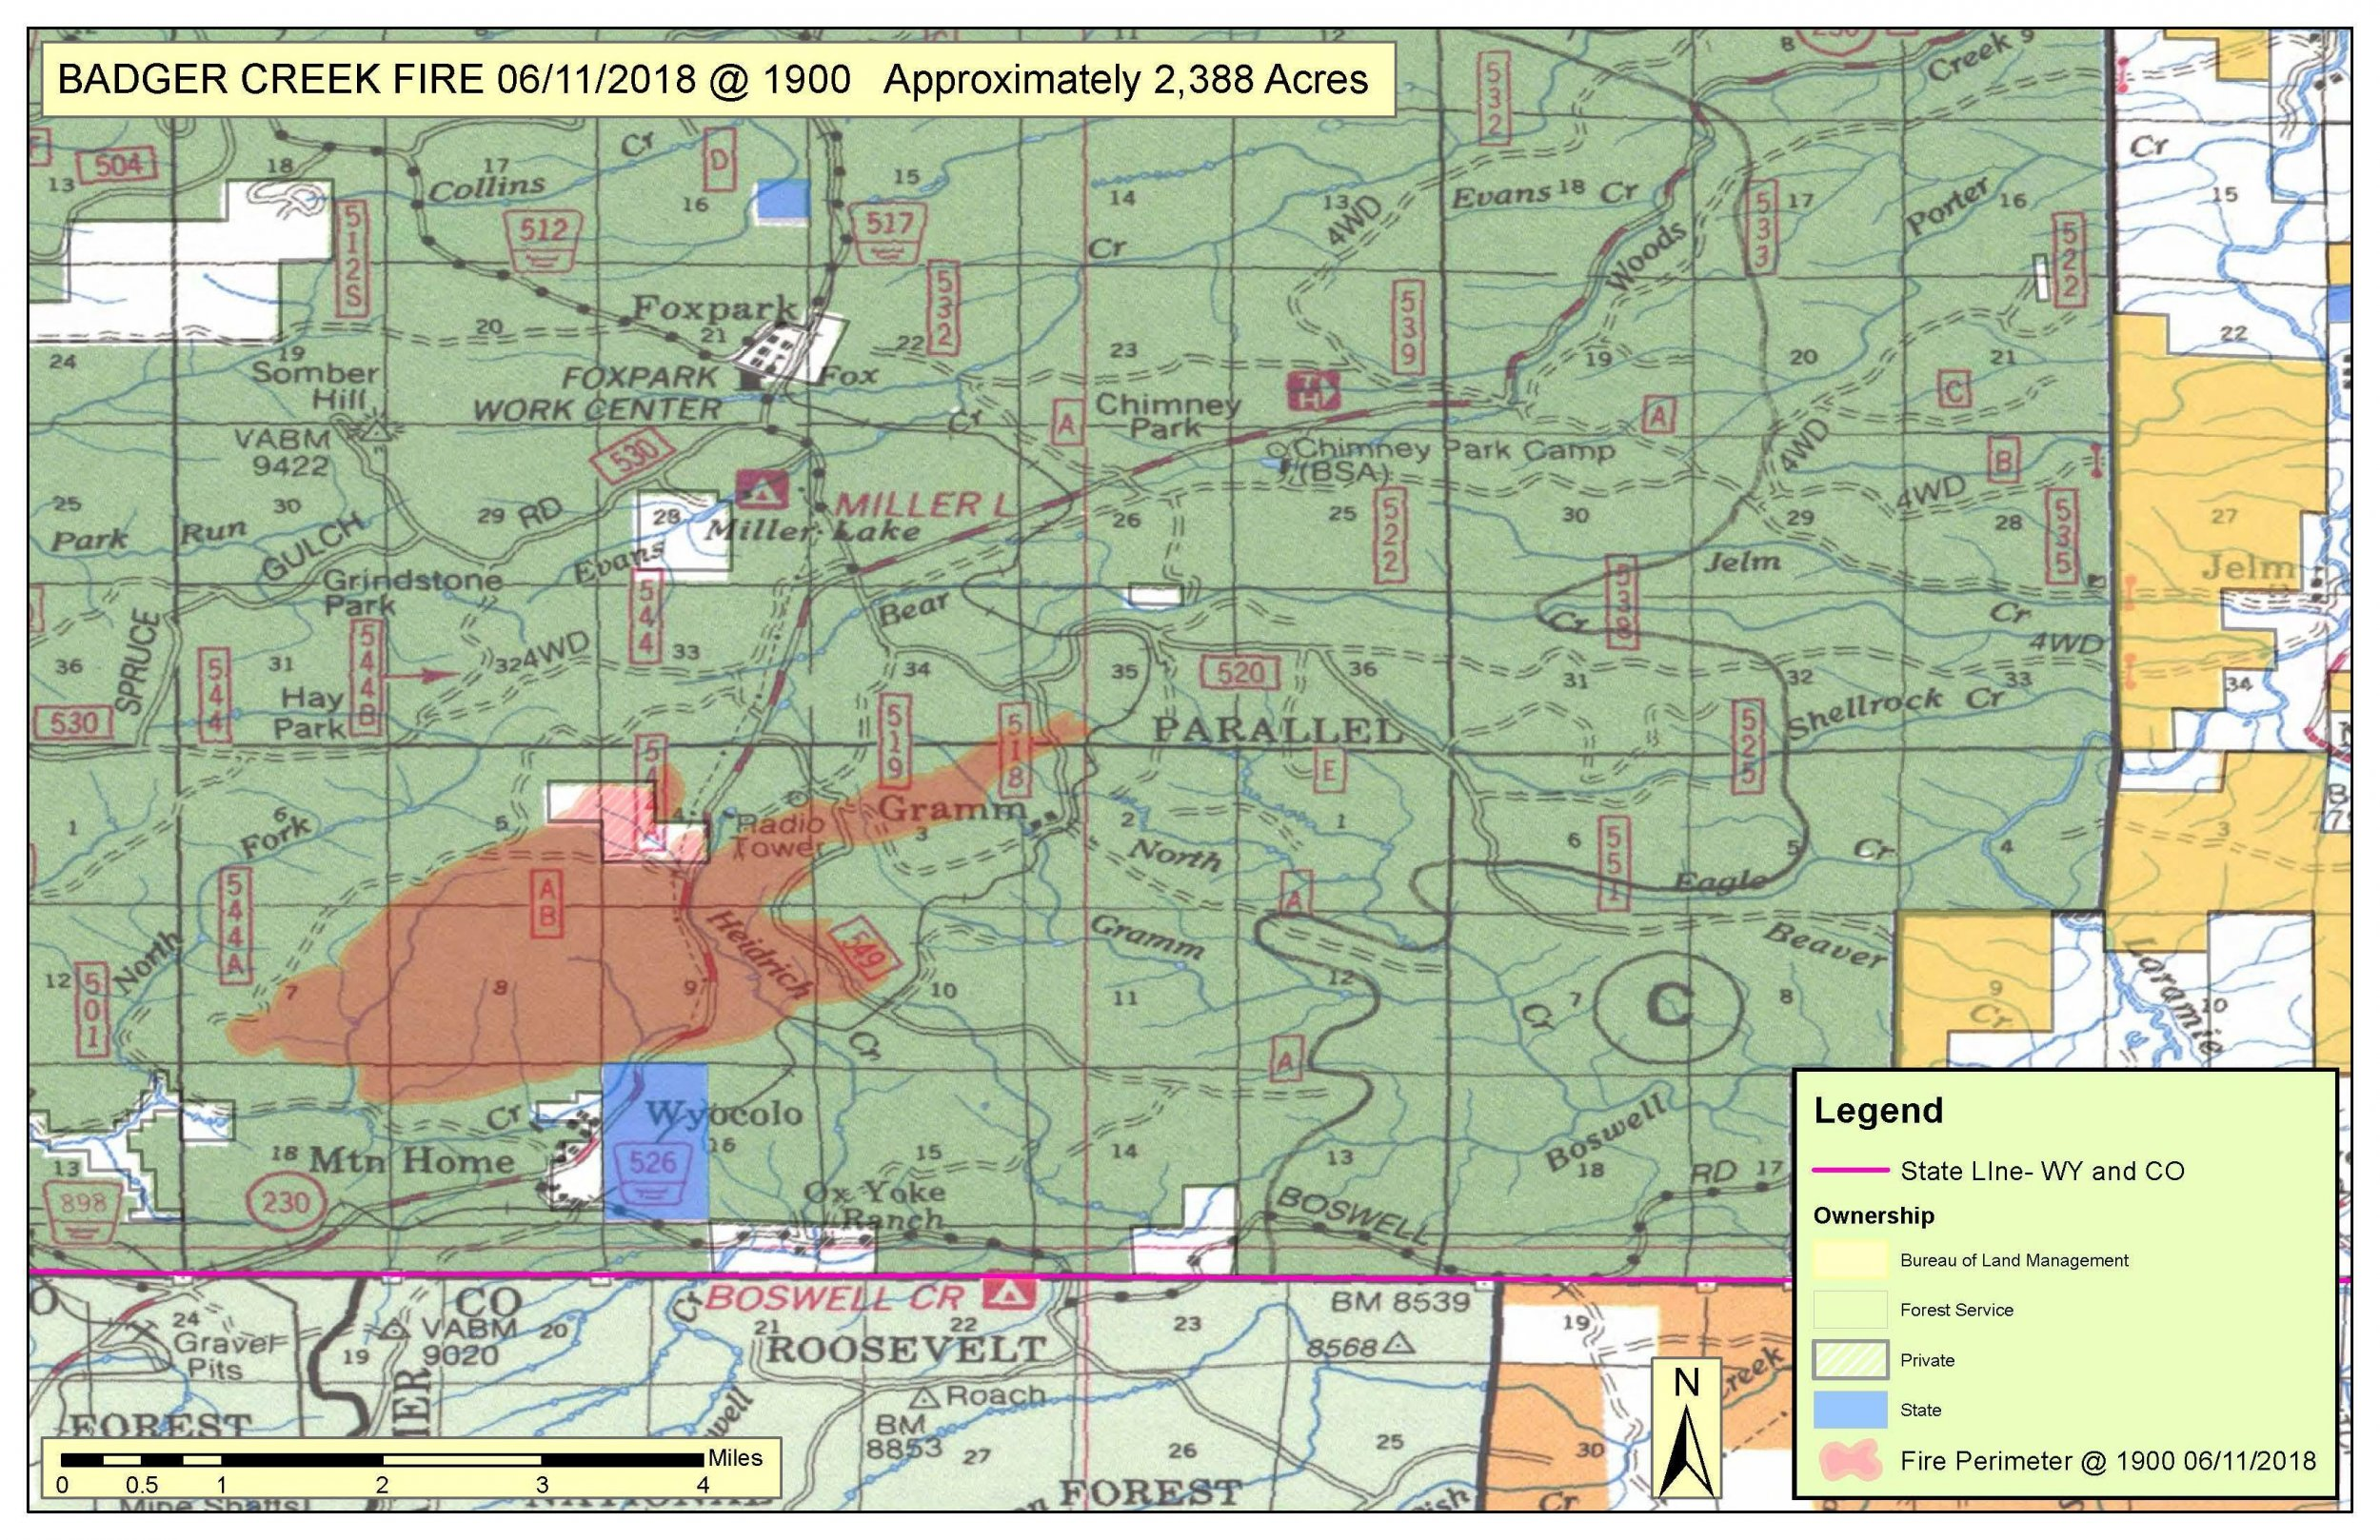 Wyoming Badger Creek Fire: Pre-Evacuations and Evacuations Ordered